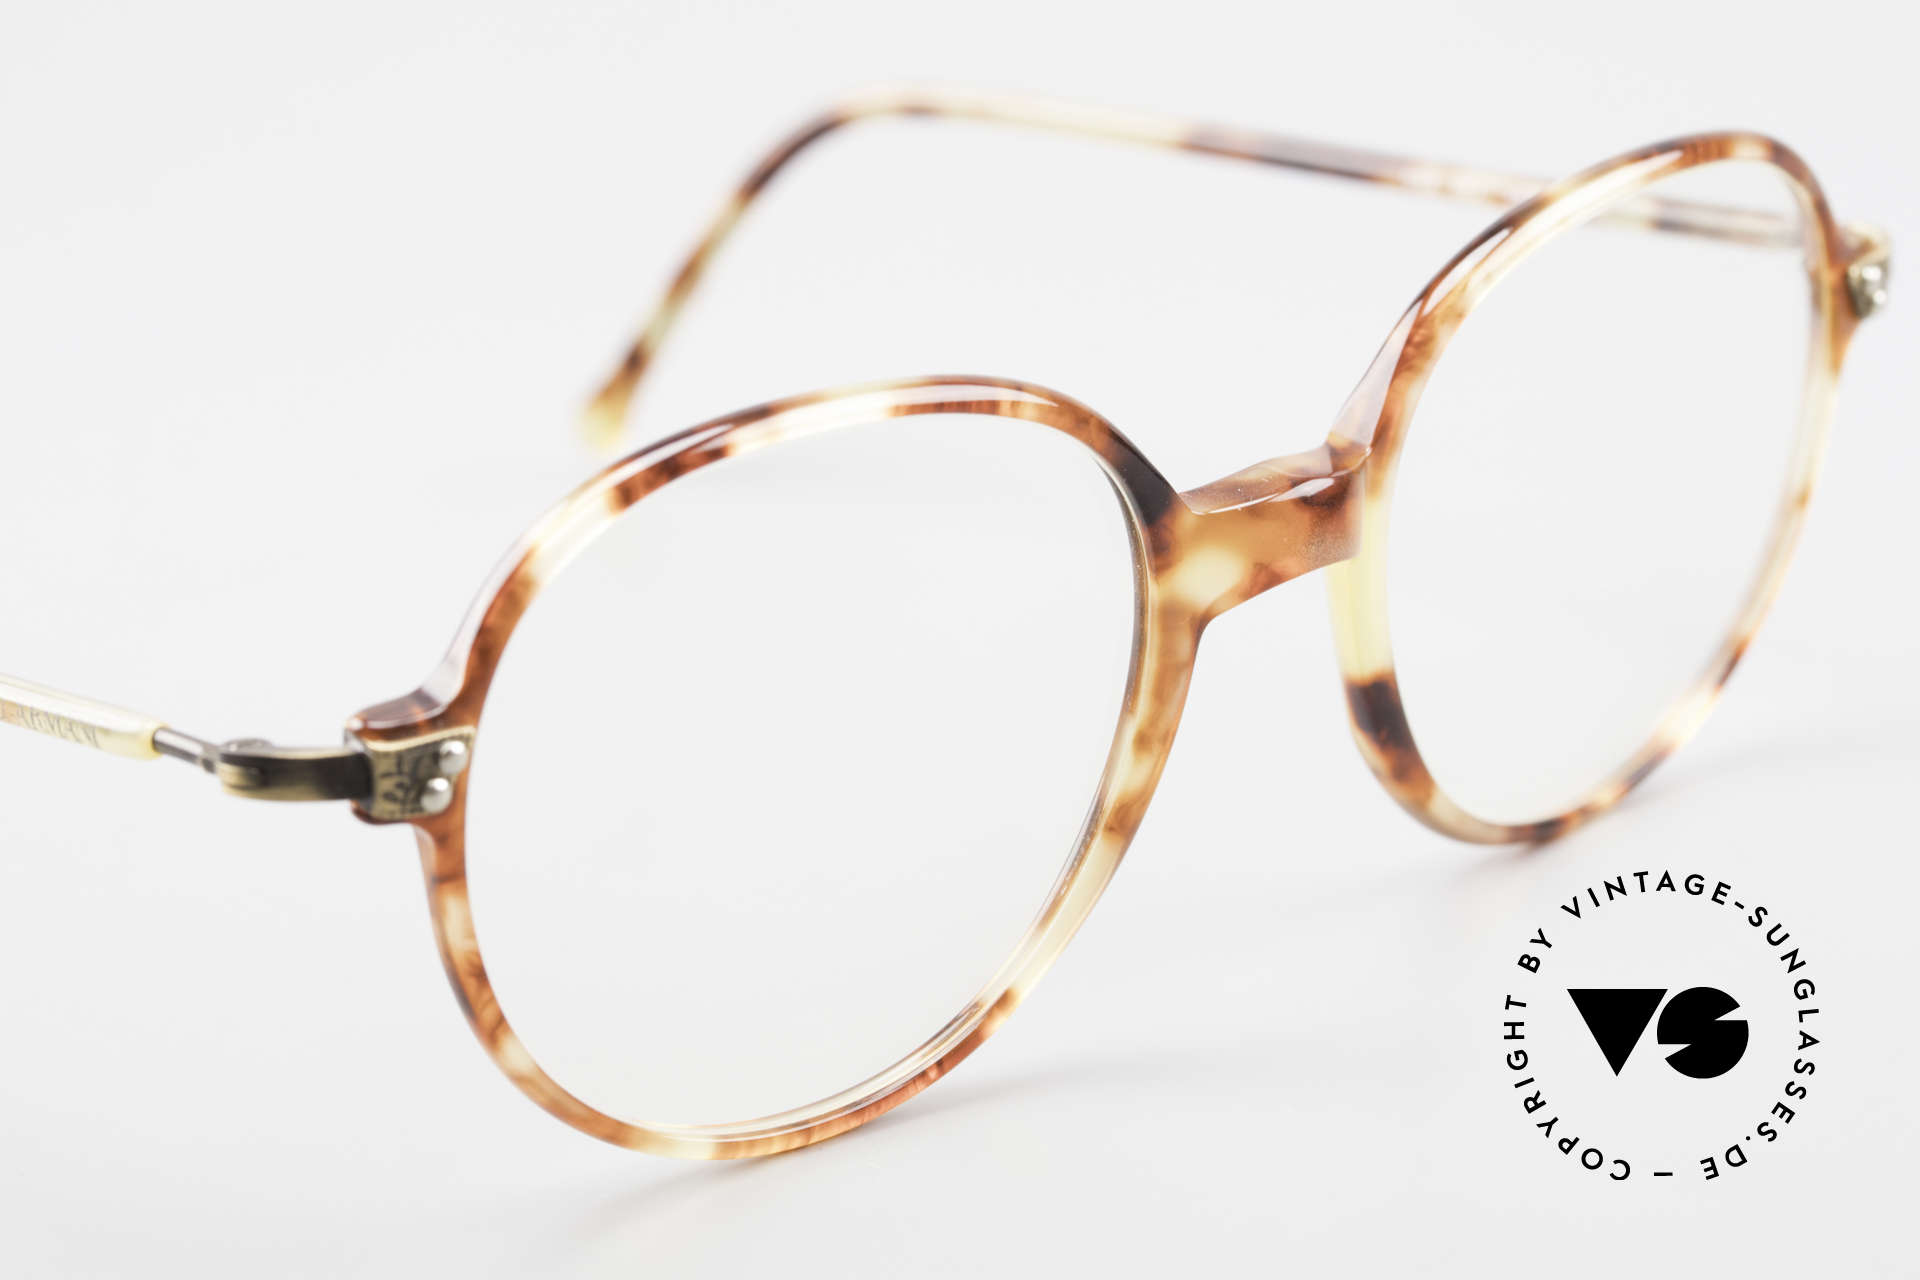 Giorgio Armani 334 Vintage Round Eyeglass-Frame, never worn (like all our vintage Giorgio Armani specs), Made for Men and Women